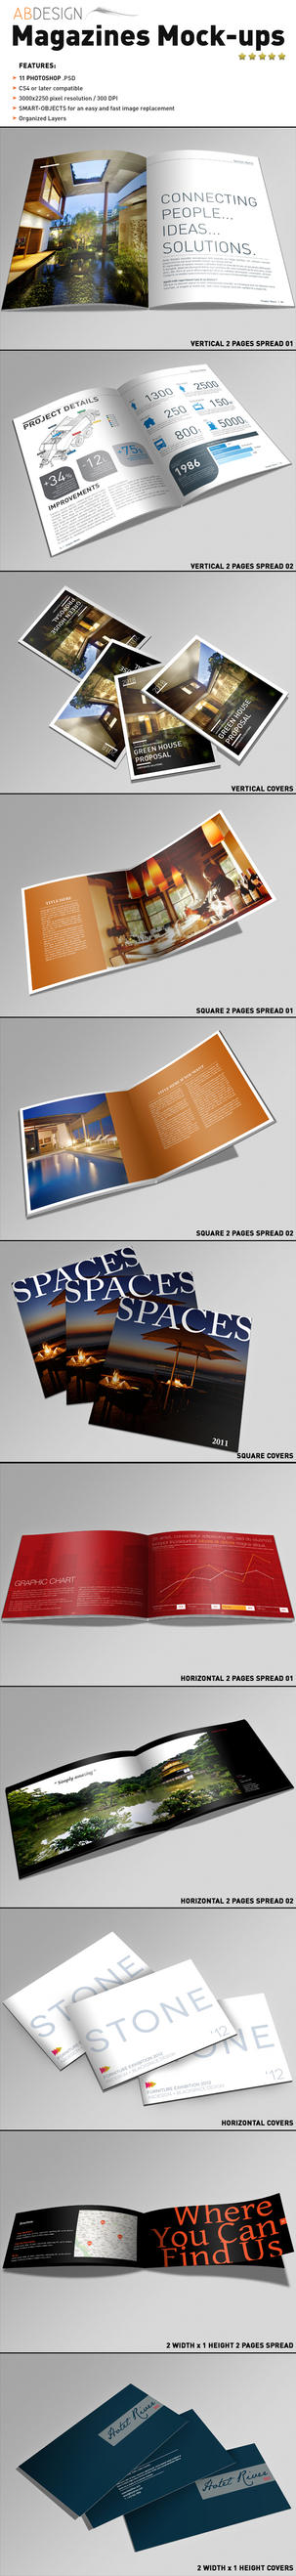 Magazines Mock-ups by andre2886